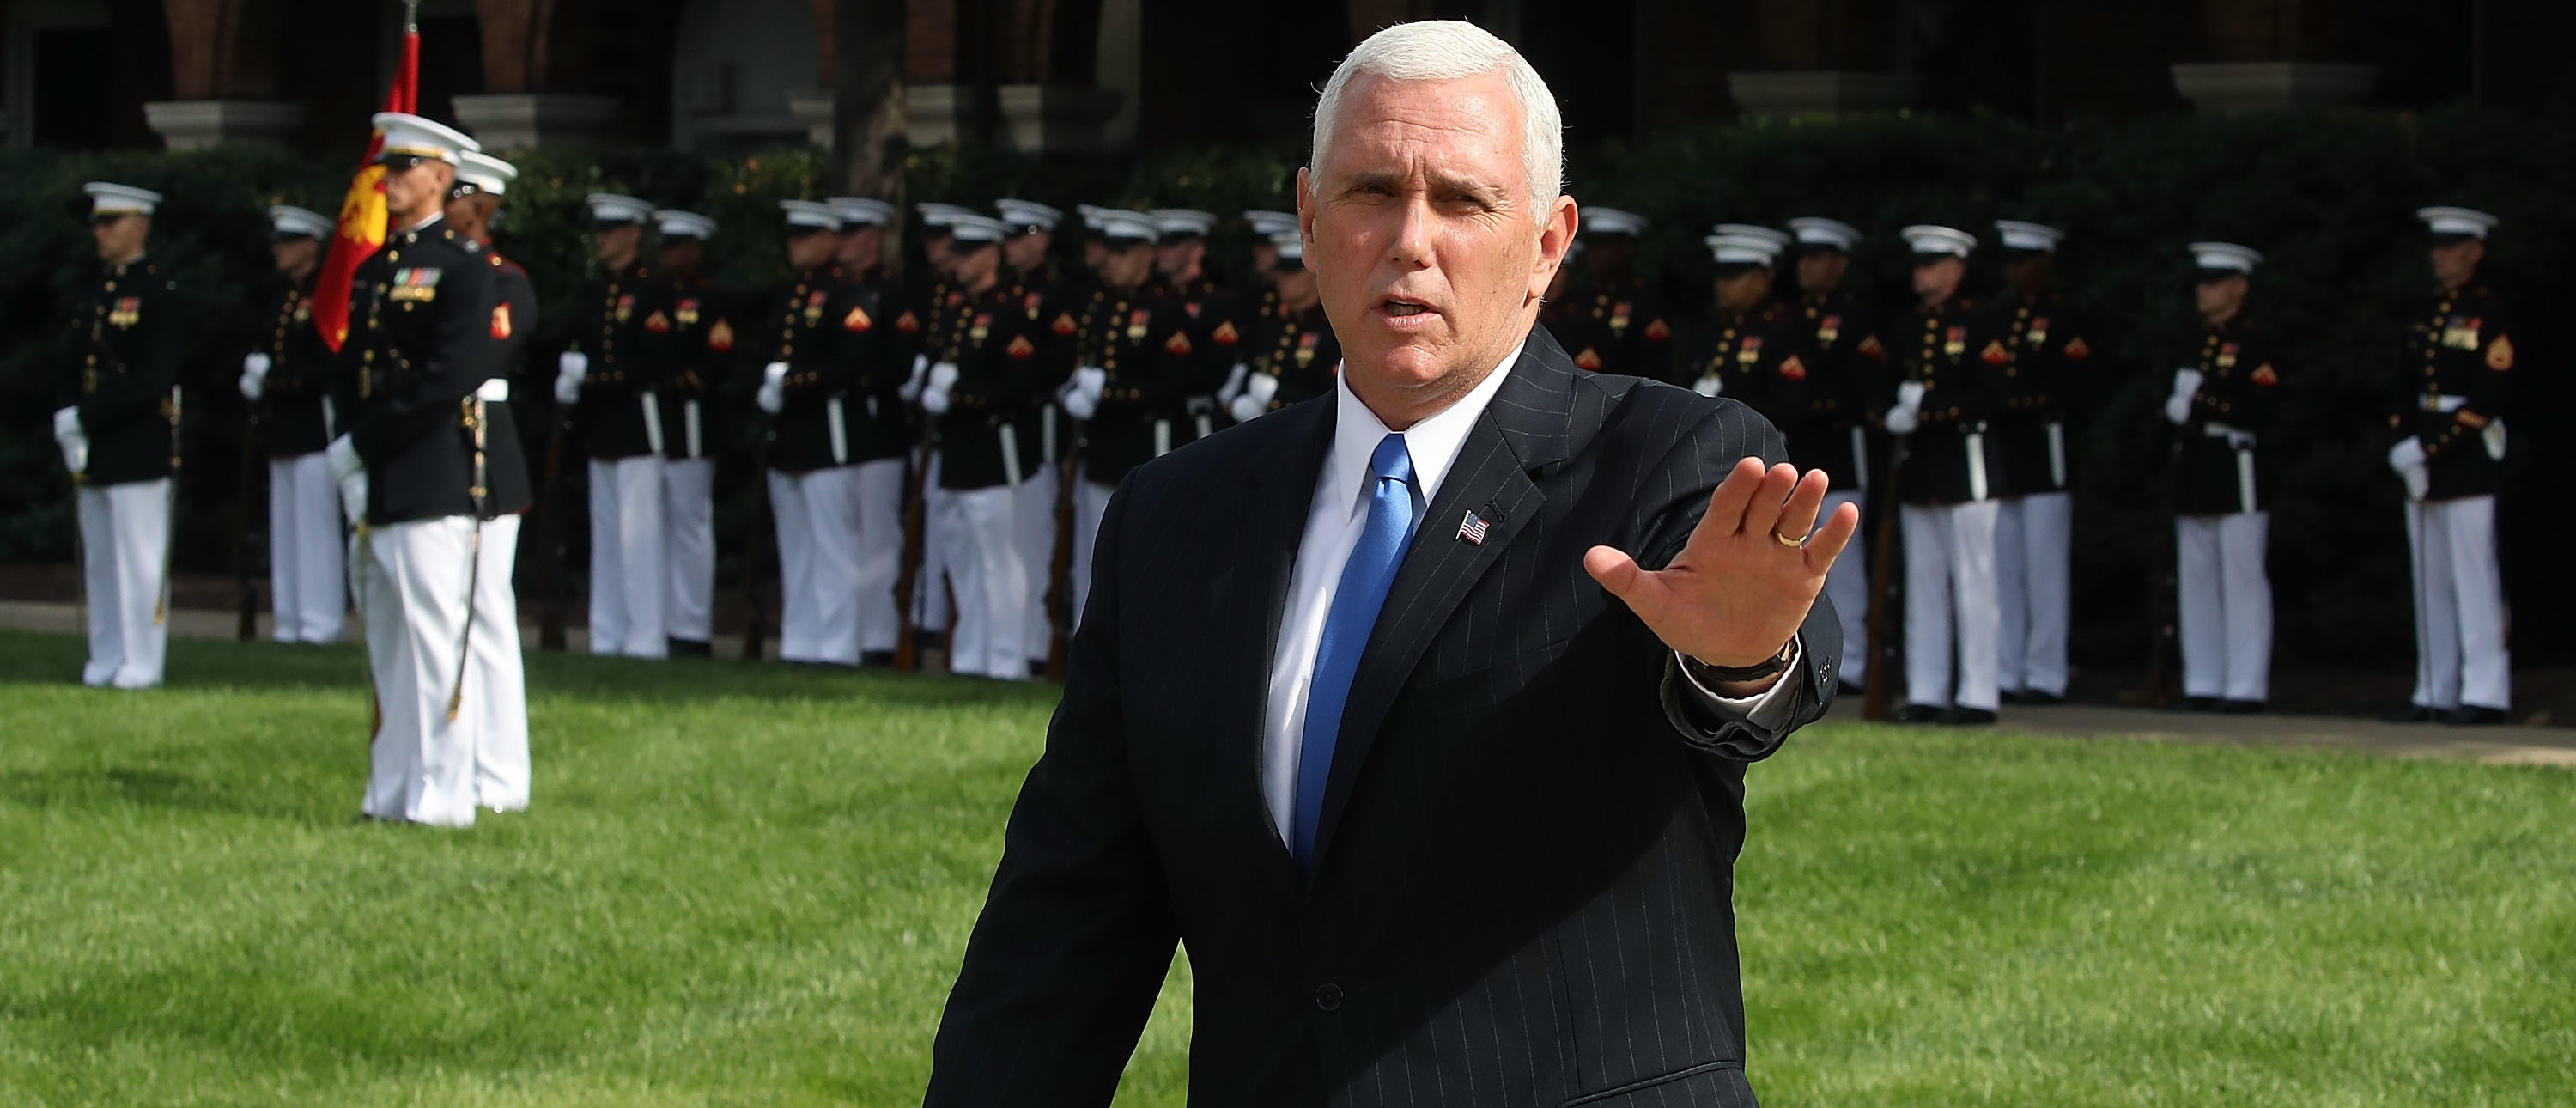 WASHINGTON, DC - OCTOBER 23: U.S. Vice President Mike Pence participates in a ceremony to commemorate the anniversary of the 1983 bombing of the Marine barracks in Beirut, Lebanon, at the Marine barracks on October 23, 2017 in Washington, DC. 34 years ago today terrorist detonated two truck bombs at a building that housed U.S. troops, killing 220 Marines, 18 sailors and 3 soldiers. (Photo by Mark Wilson/Getty Images)